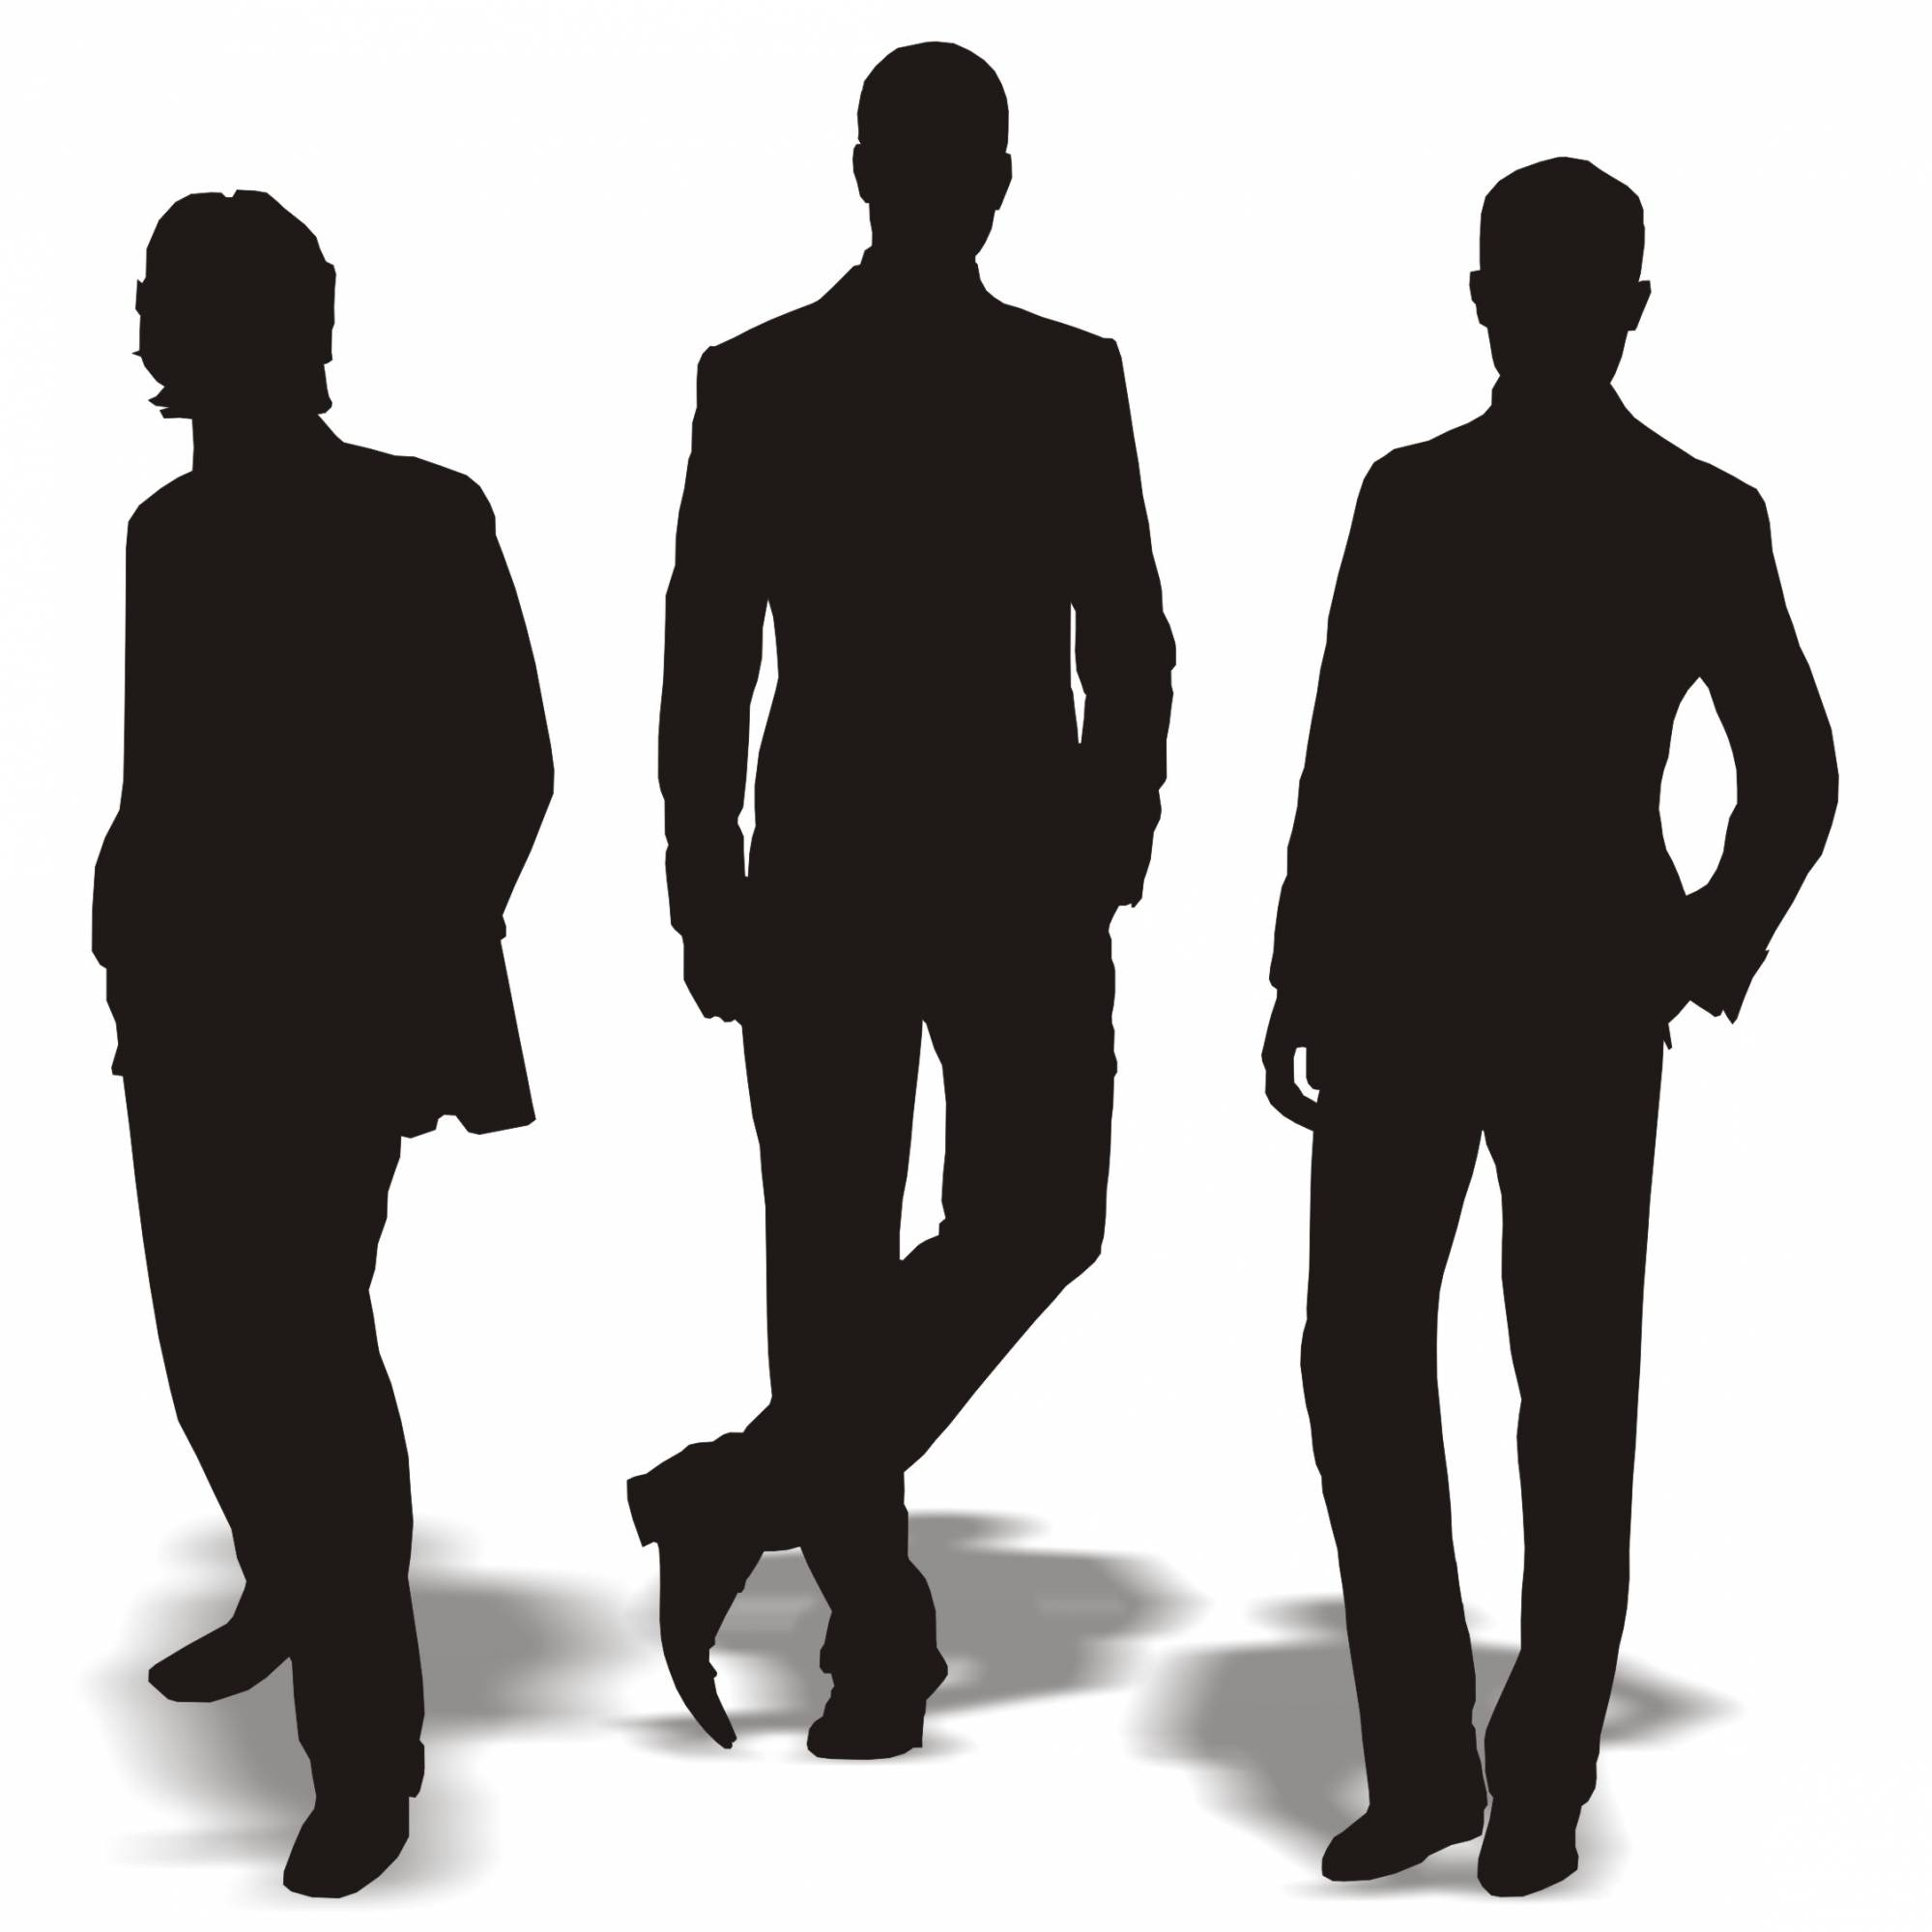 person silhouette vector free at getdrawings com free for personal rh getdrawings com person walking silhouette vector person silhouette vector free download